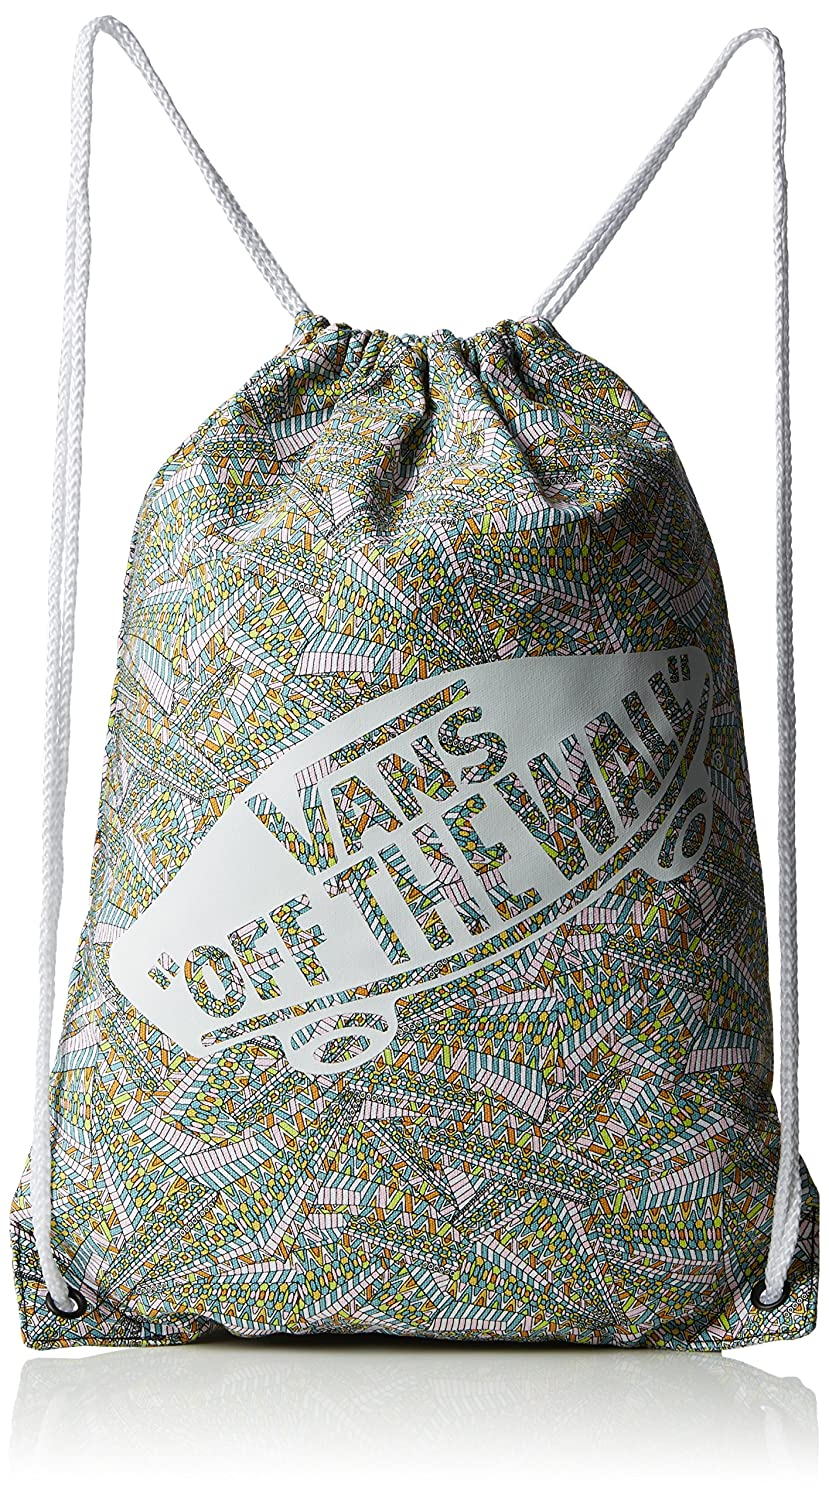 6dc9eb9006e2e Vans Women s Benched Novelty Bag Multicolor  Amazon.co.uk  Shoes   Bags